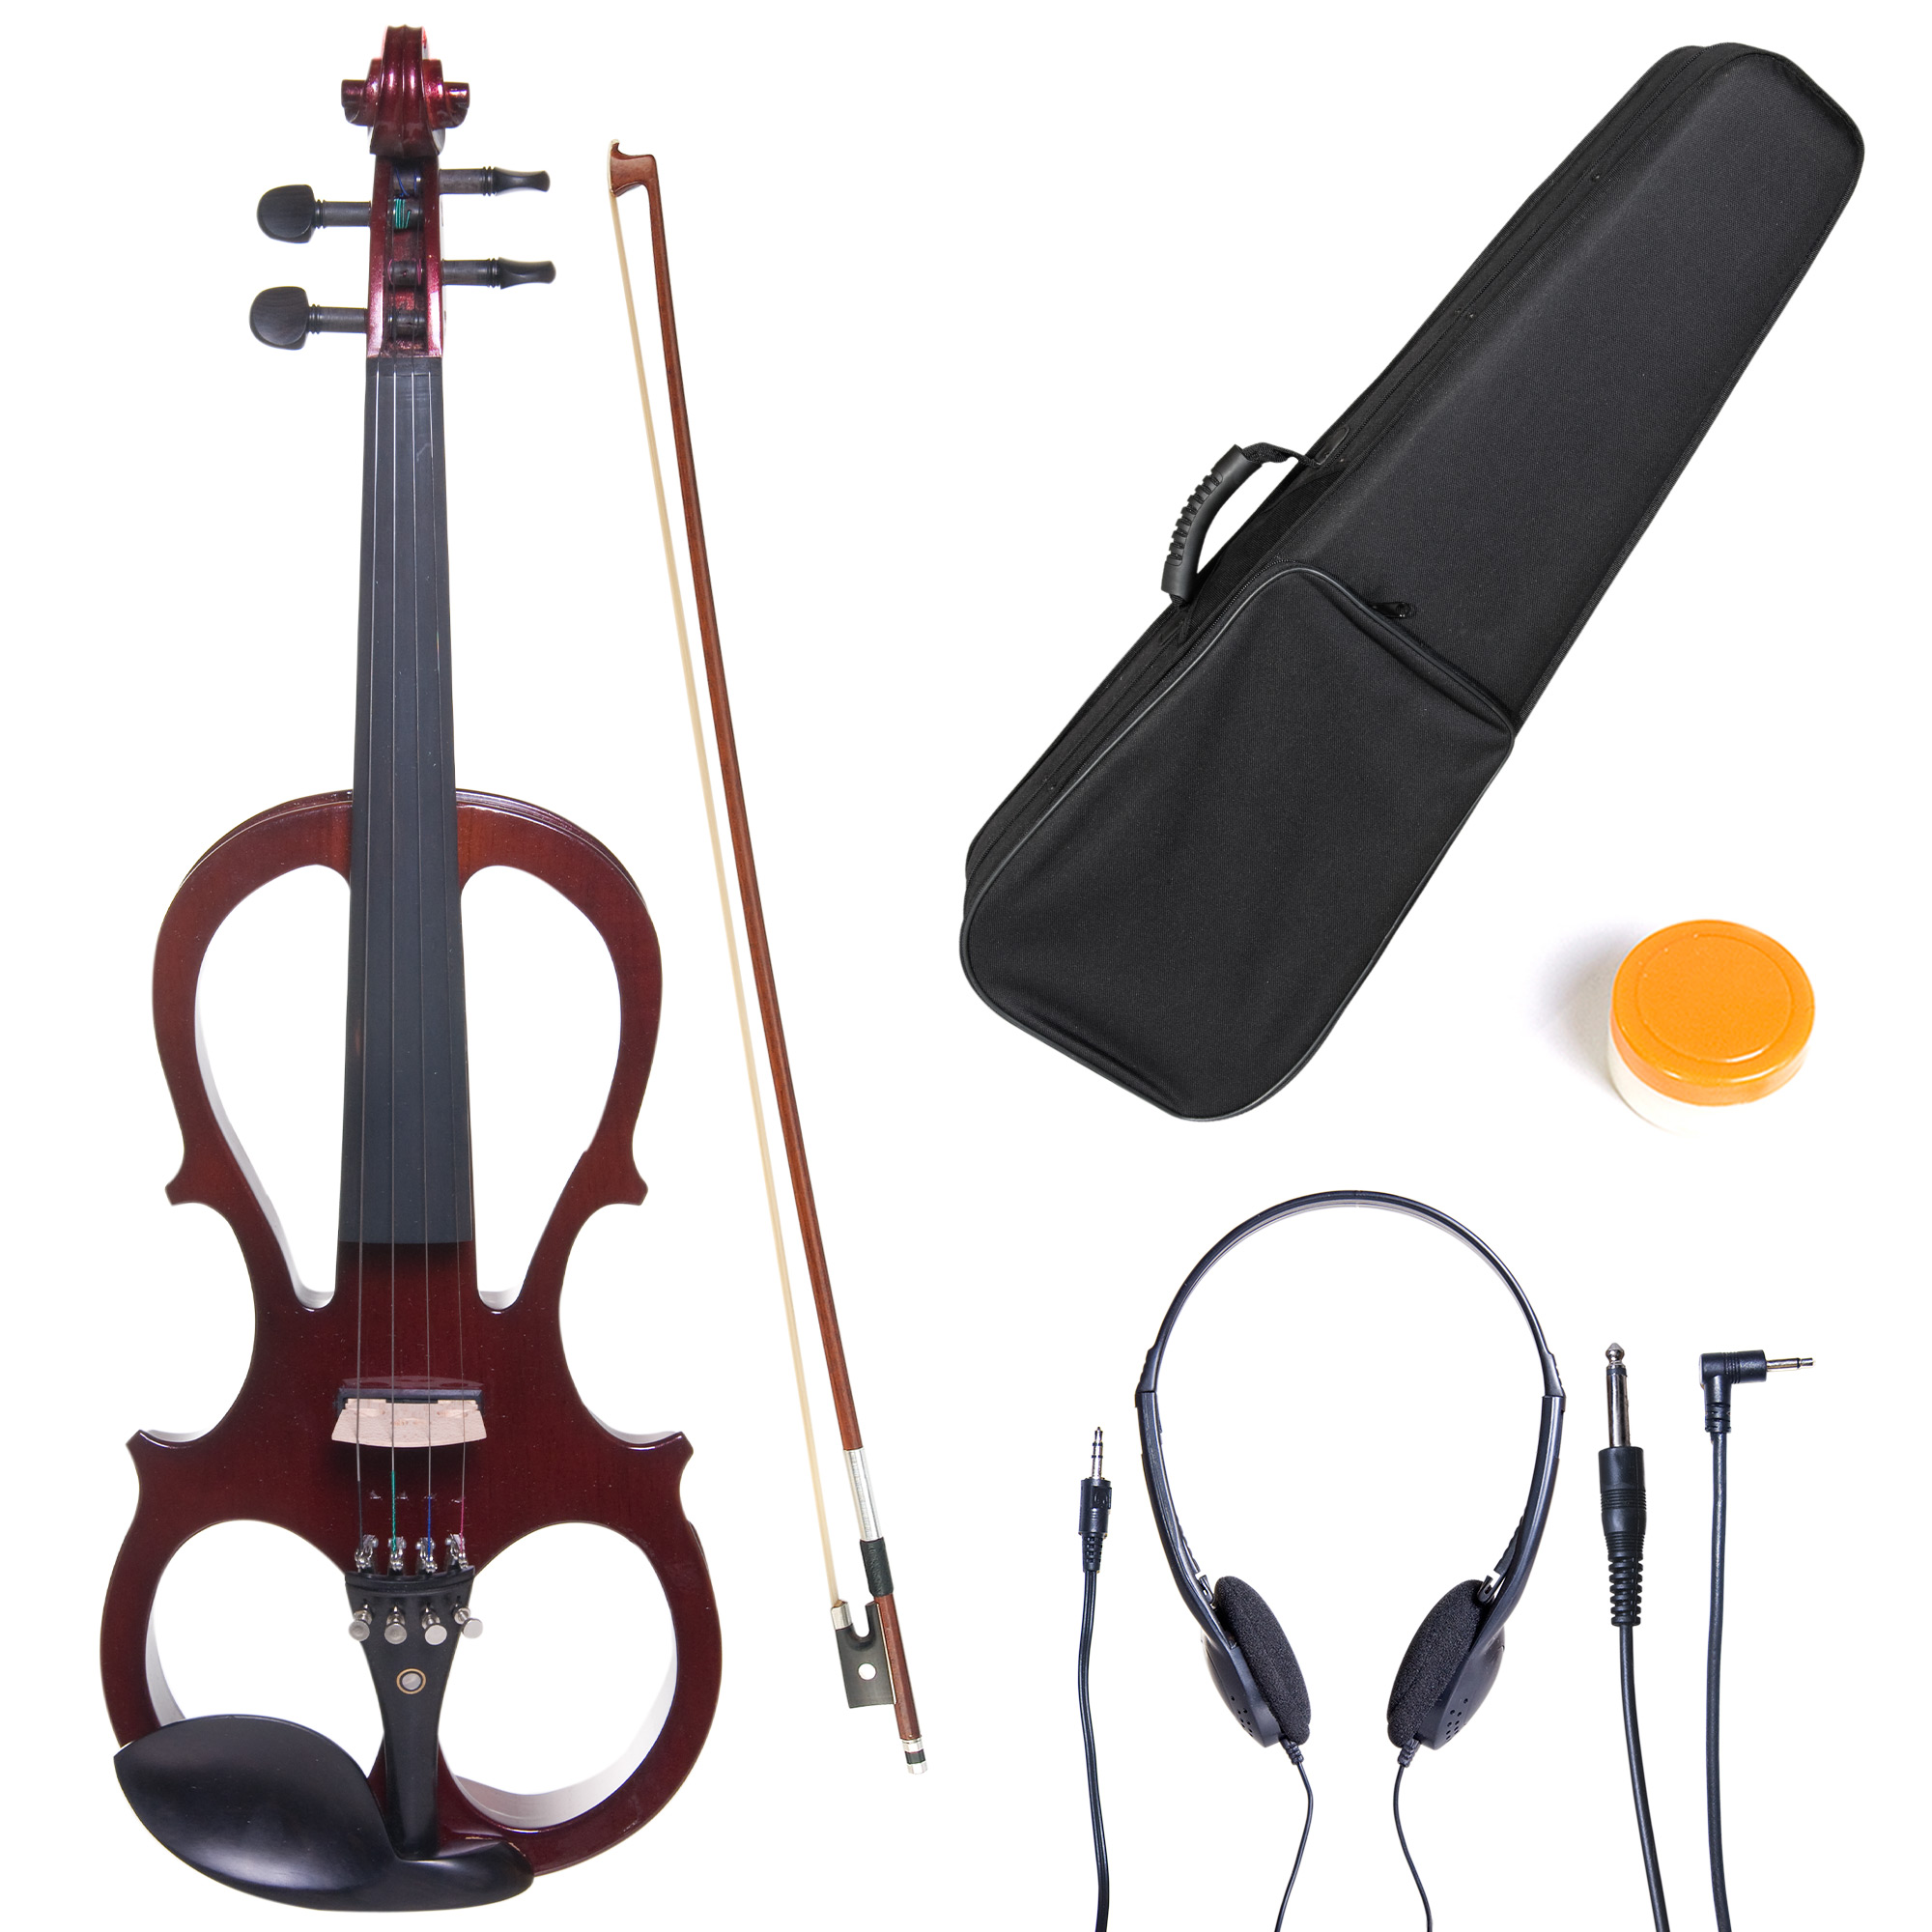 Cecilio Size 3/4 CEVN-1NA Solidwood Metallic Mahogany Electric/Silent Violin with Ebony Fittings